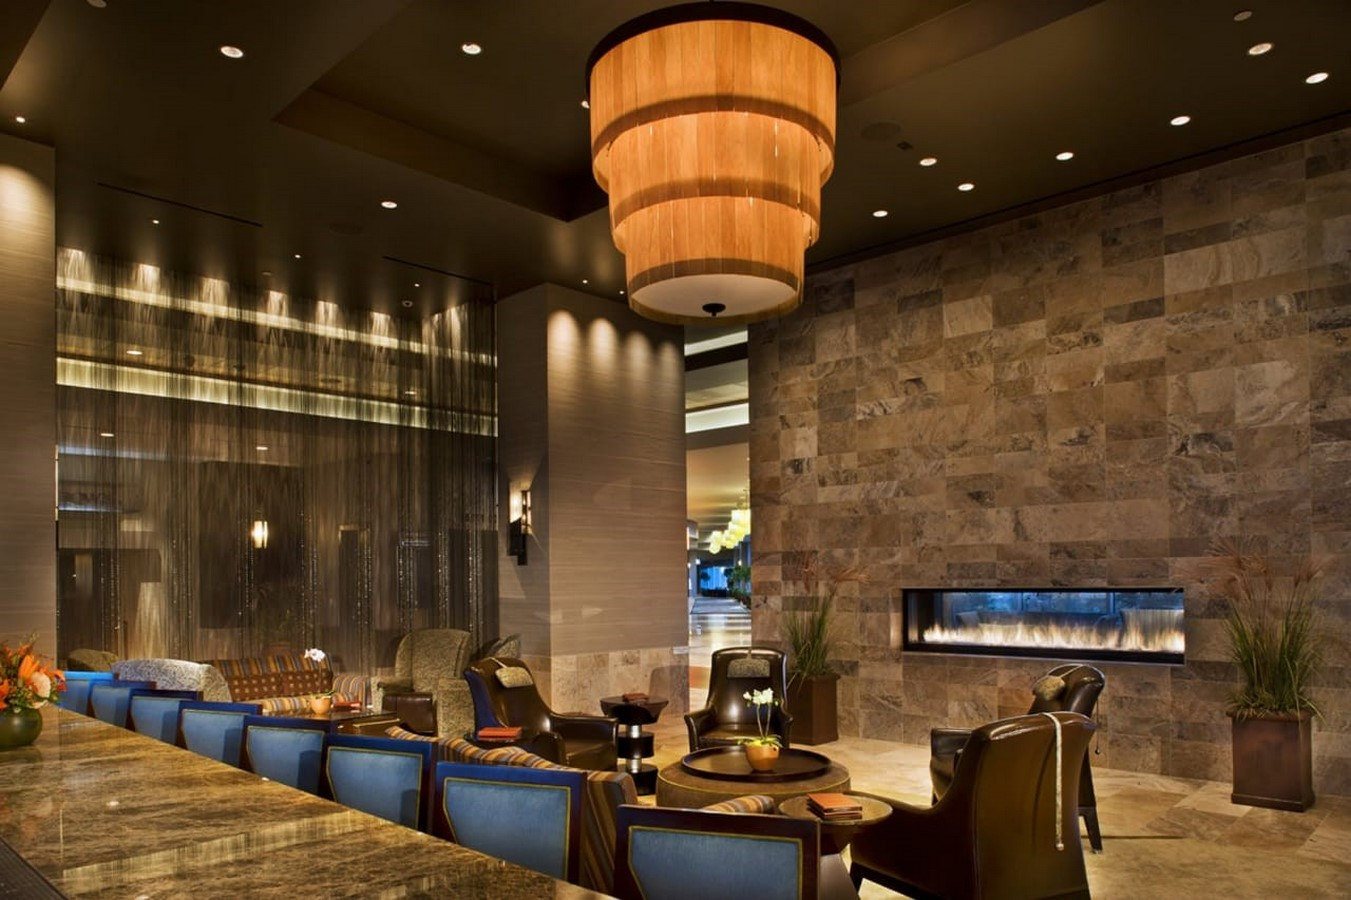 NORTHERN QUEST RESORT AND CASINO - Sheet2